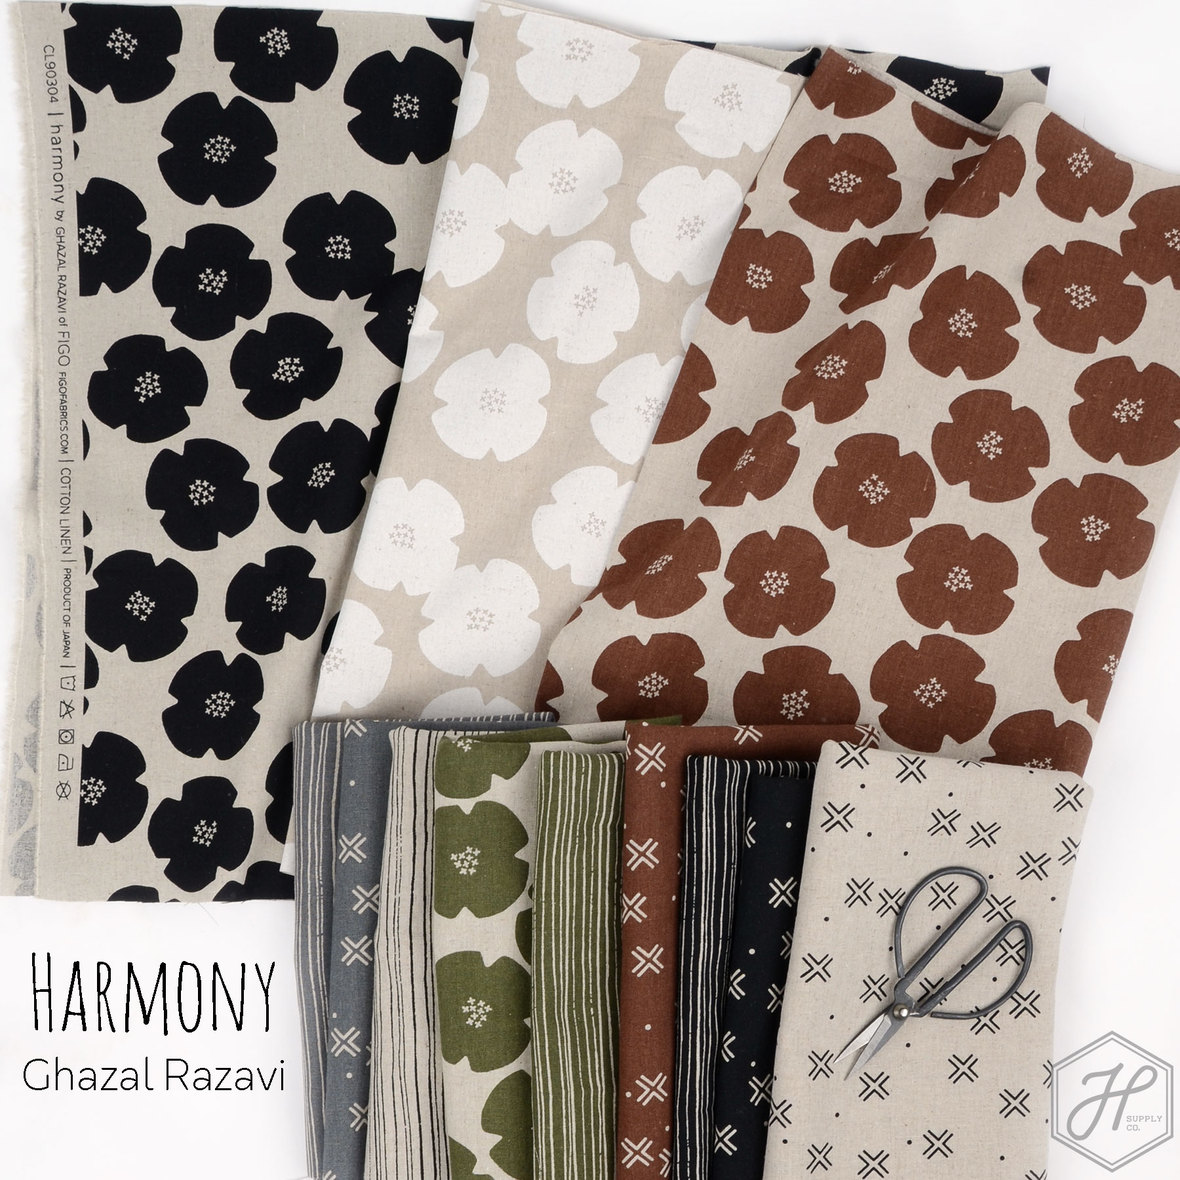 Harmony-Figo-Linen-Cotton-Canvas-at-Hawthorne-Supply-Co